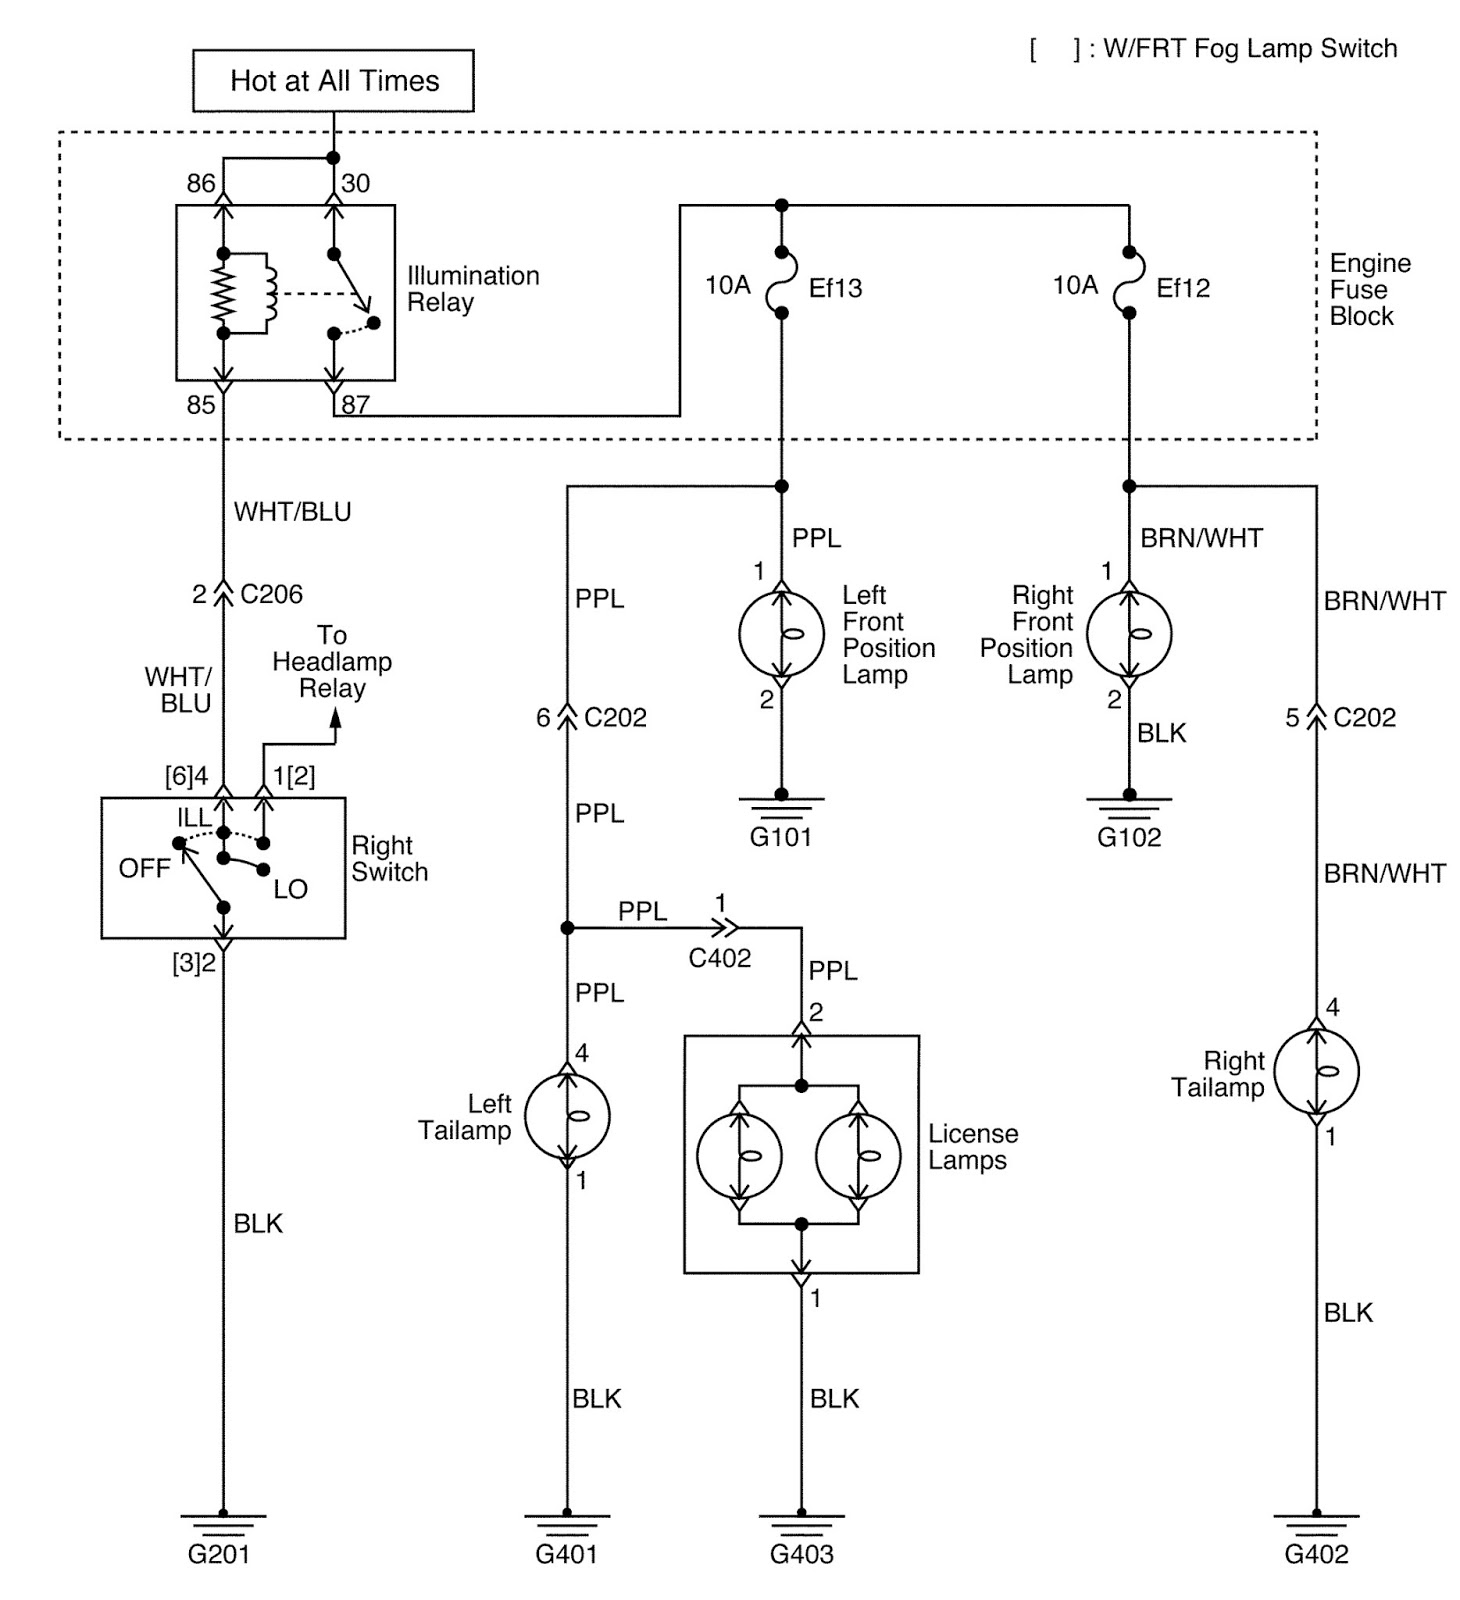 Wiring Diagram Daewoo Nubira 2 Library 2000 Fuse Matiz Circuit Block And Schematic Diagrams U2022 2001 Parts